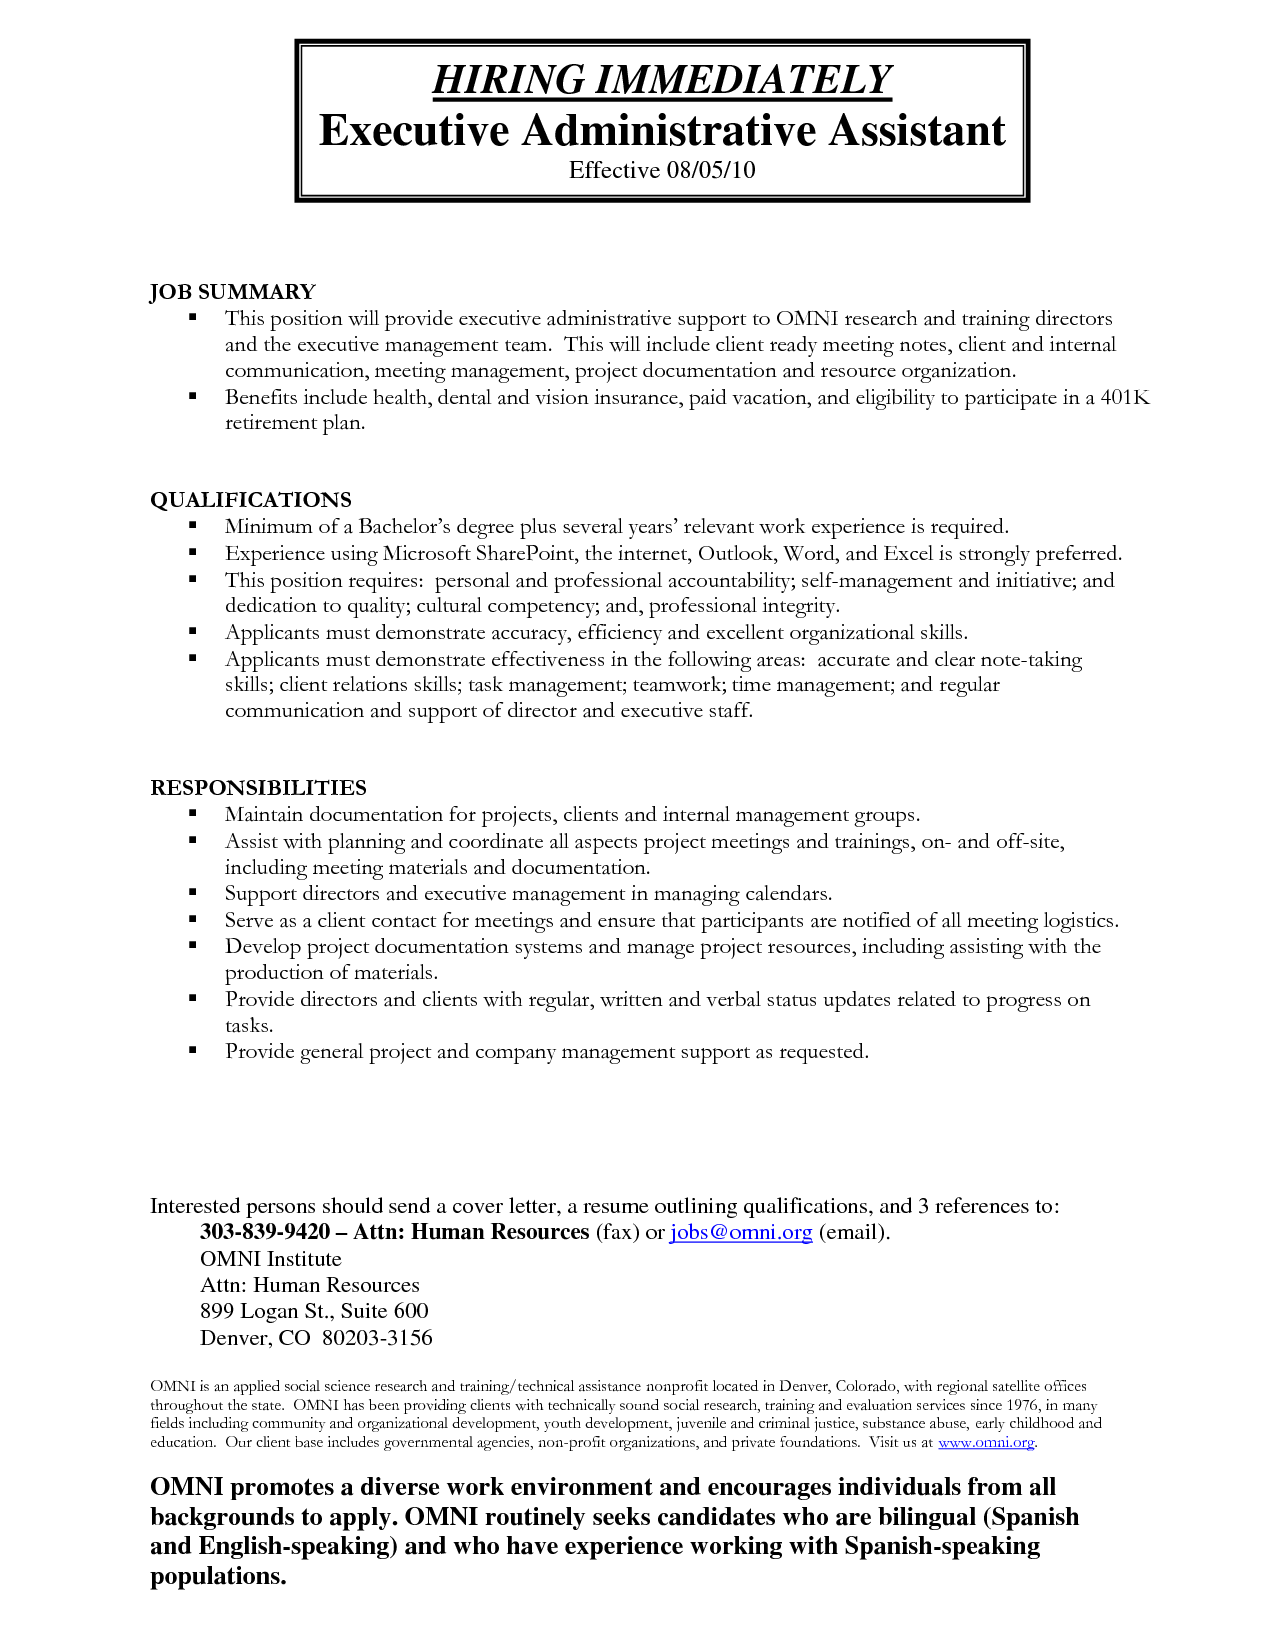 Administrative Assistant Duties Construction Company Sample Resume